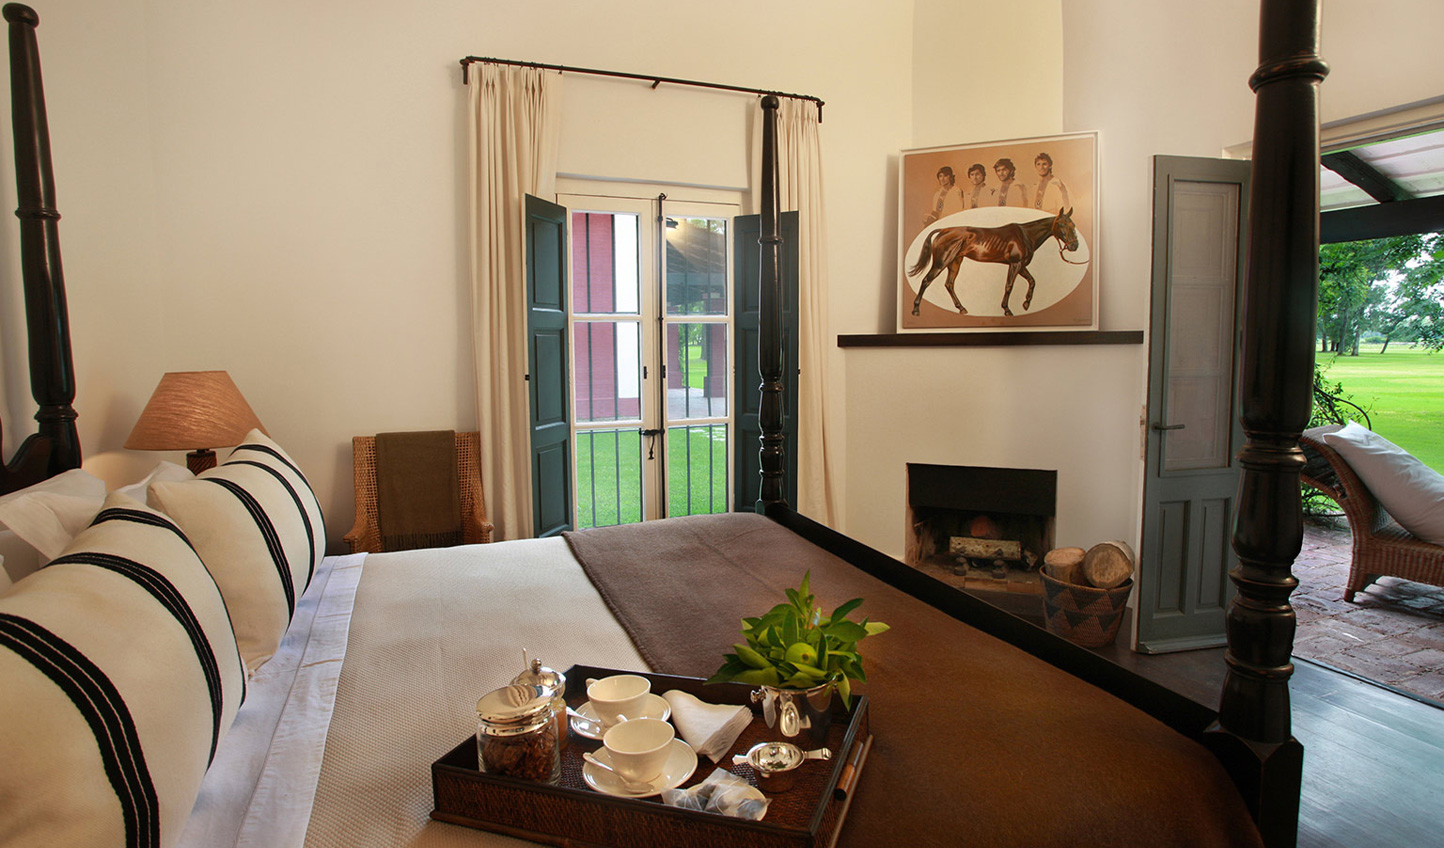 Wake up to views across the estancia